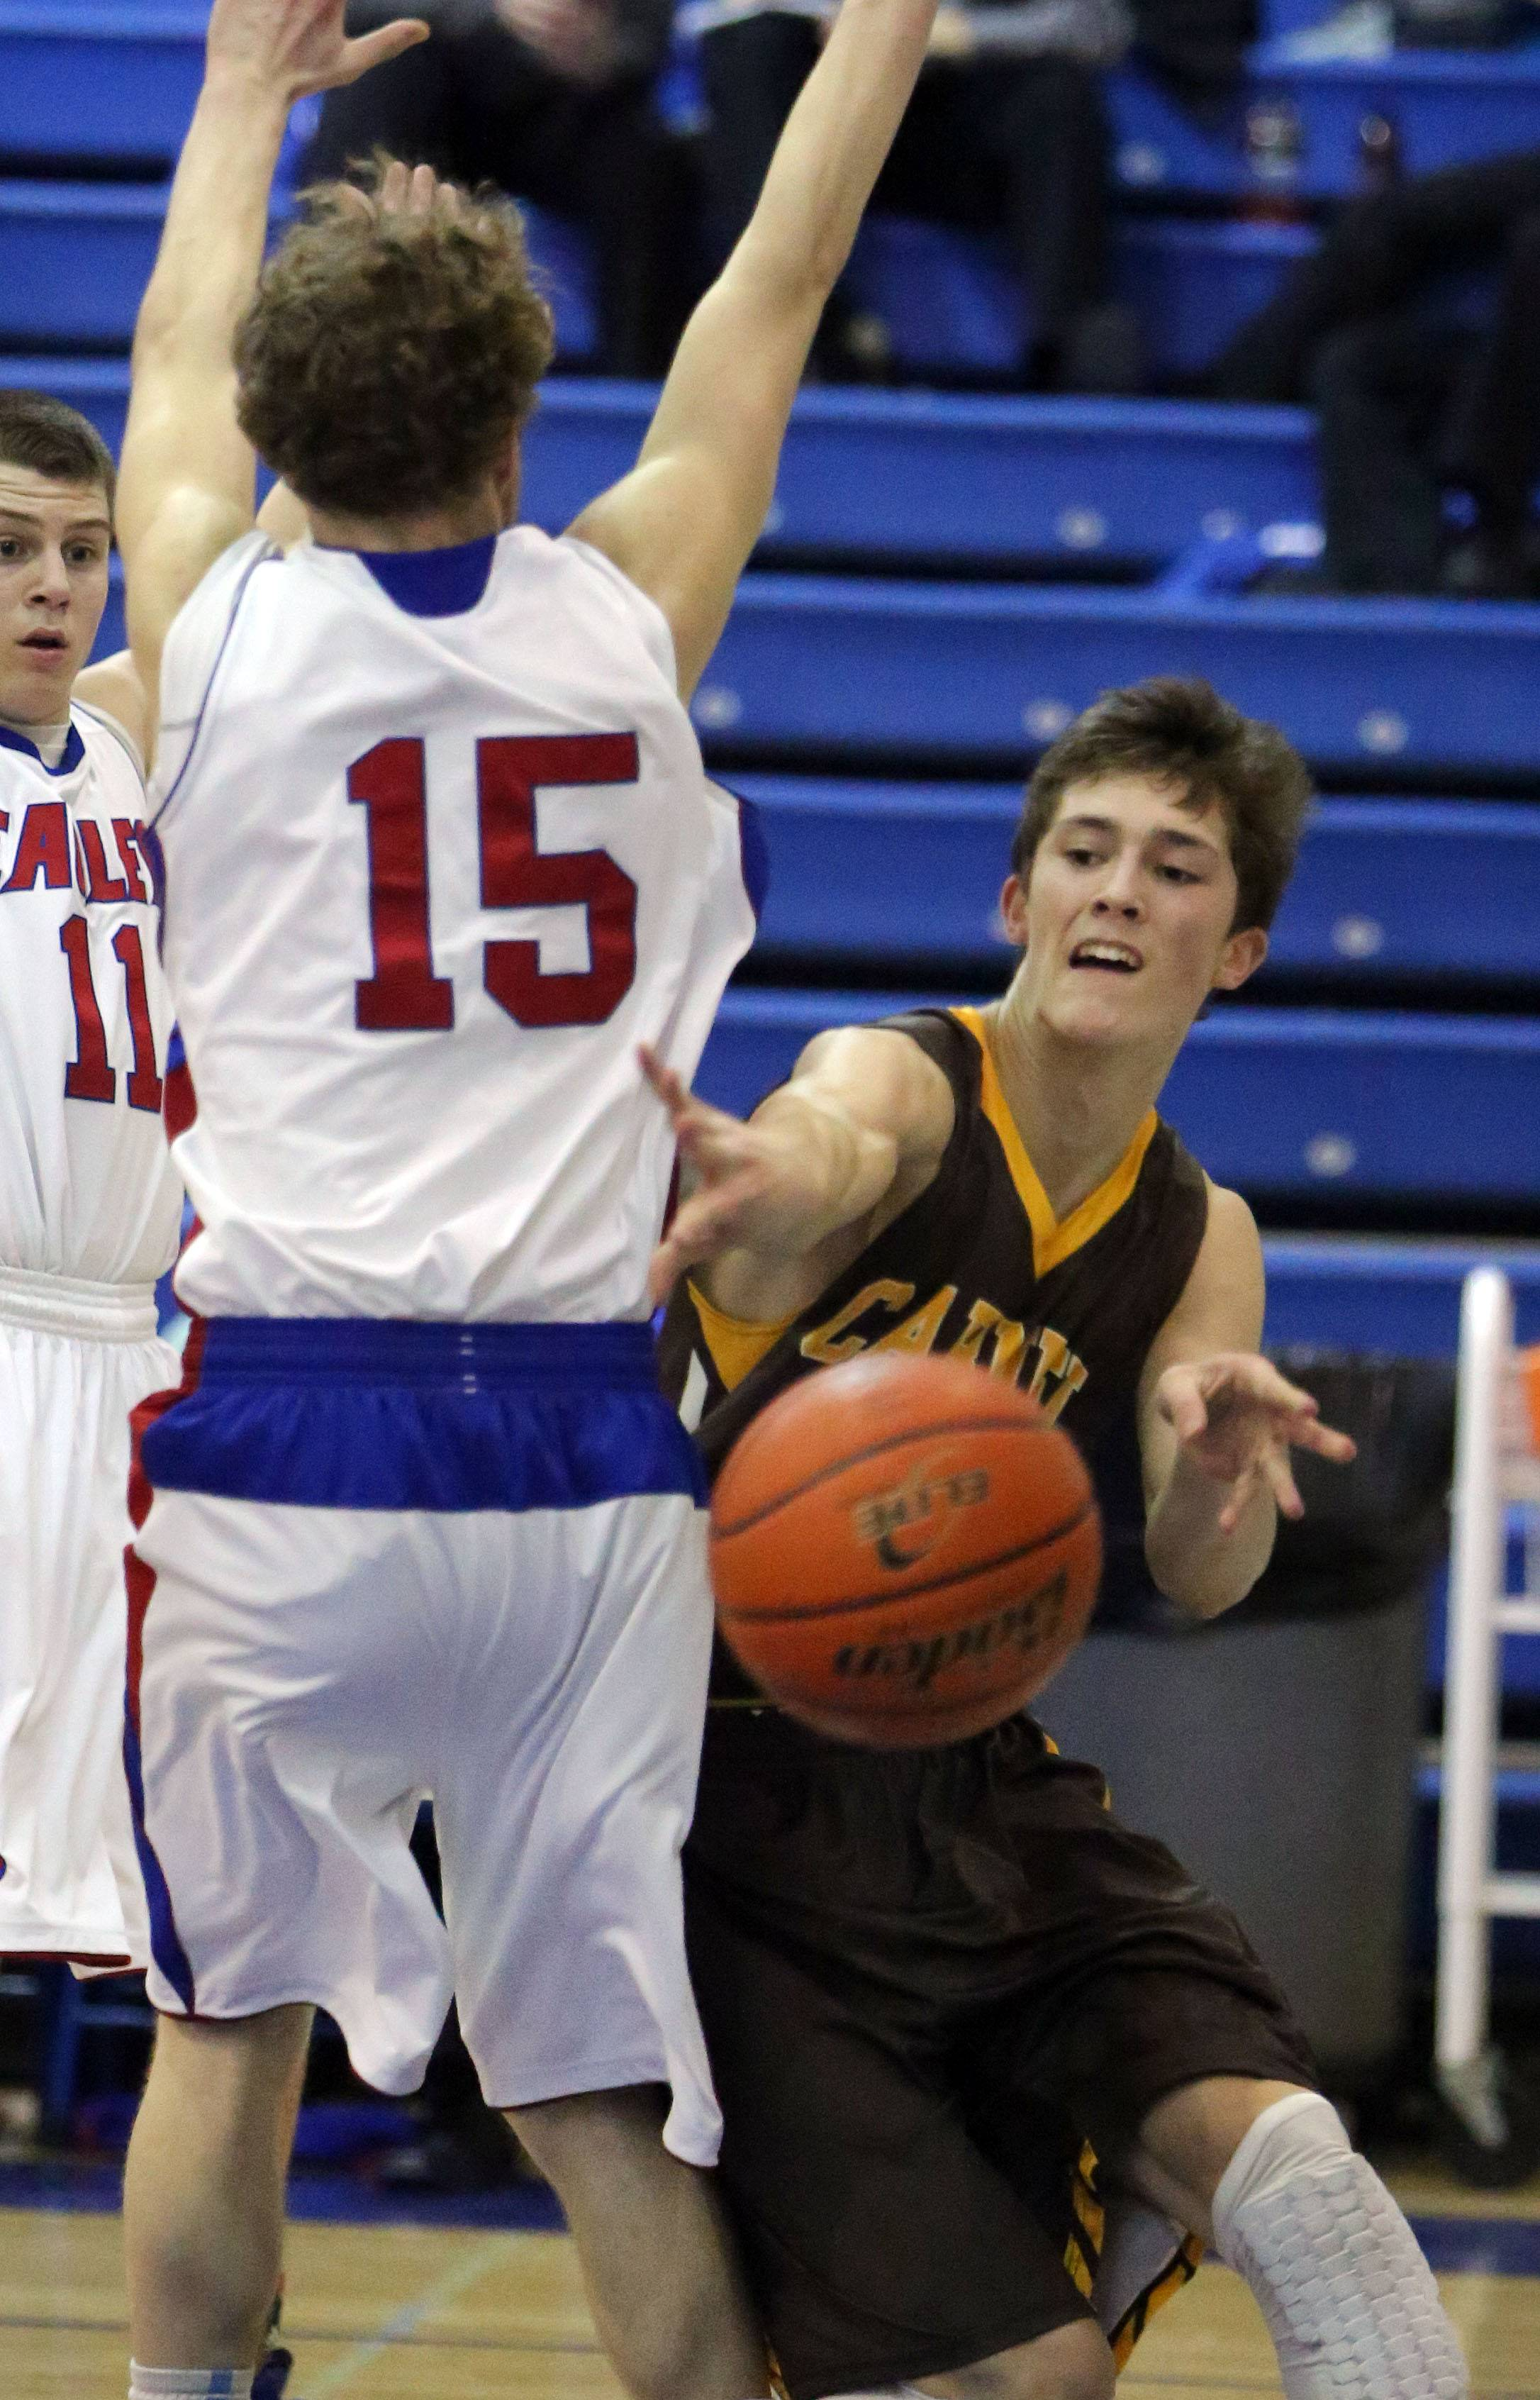 Carmel's Billy Kirby, right, passes around Lakes' Benett Haviland on Monday night at Lakes.